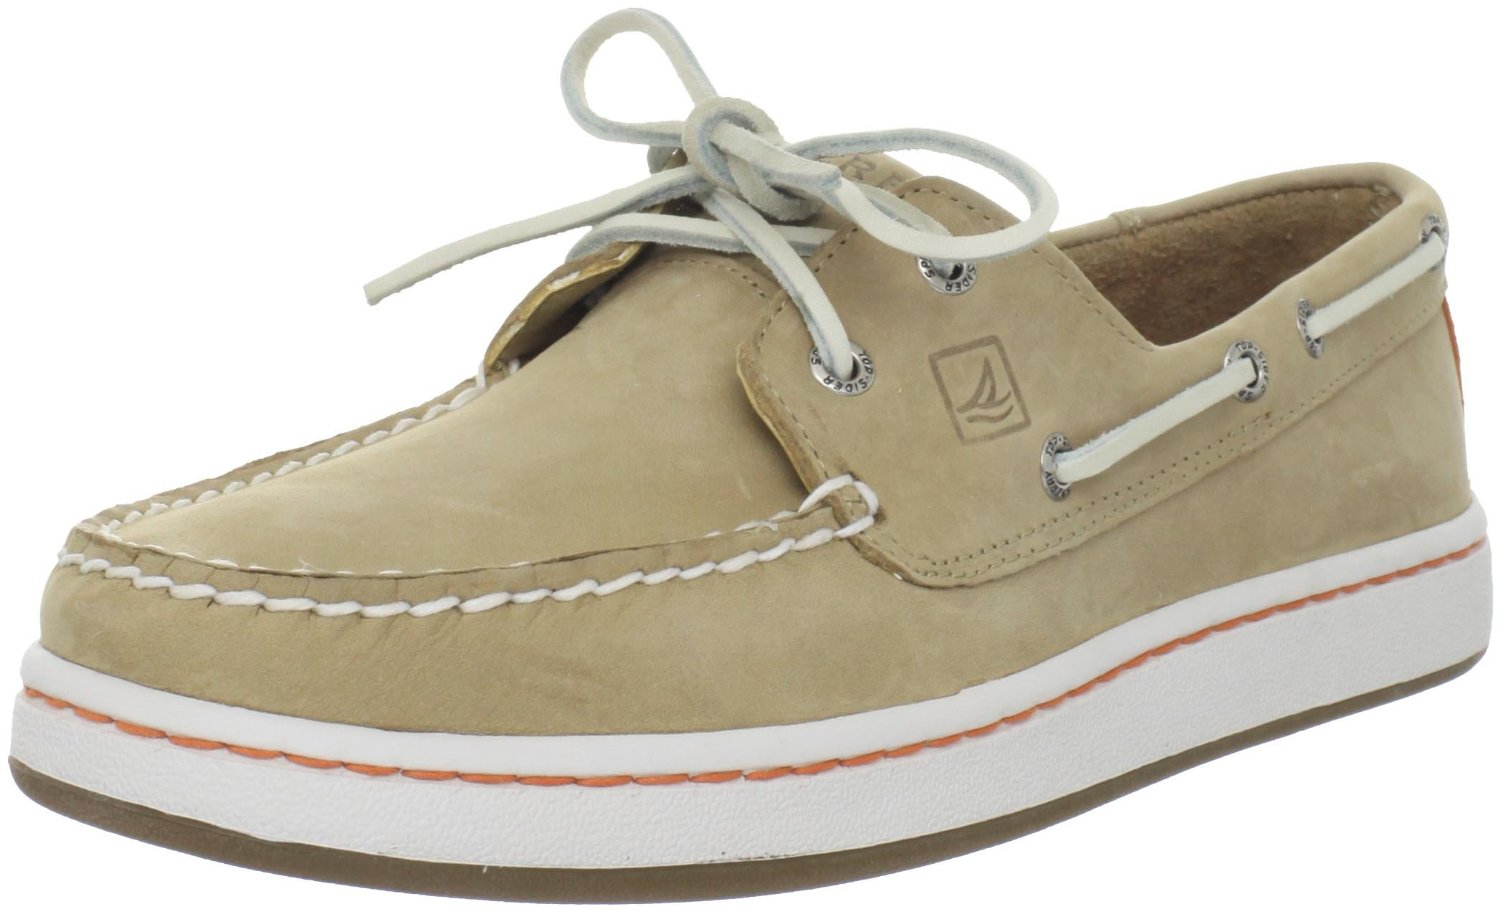 Sperry TopSider  Beige Sperry Topsider Mens Sperry Cup Boat Shoe for